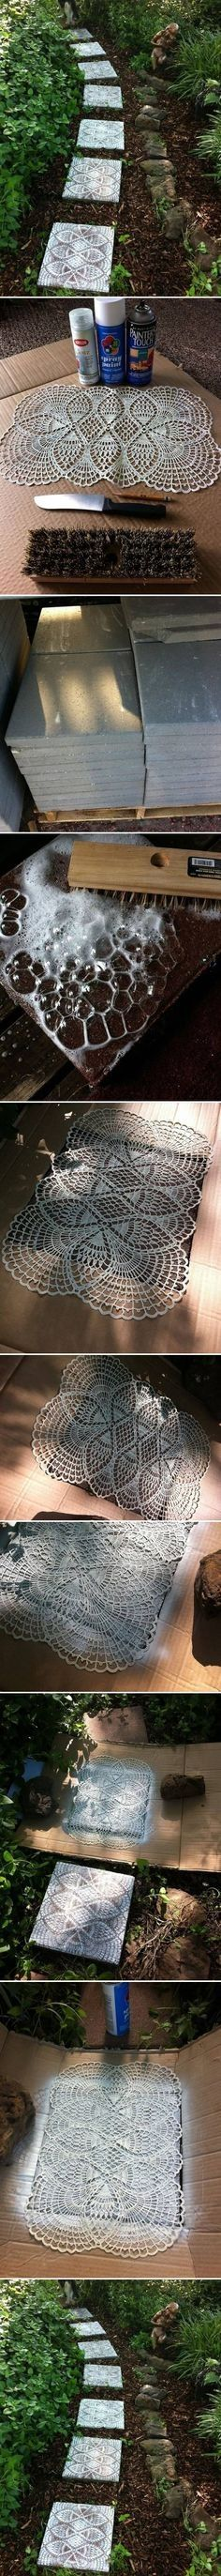 DIY Lace Like Stepping Stones - diy craft crafts easy crafts (follow the pictures step-by-step). so lovely